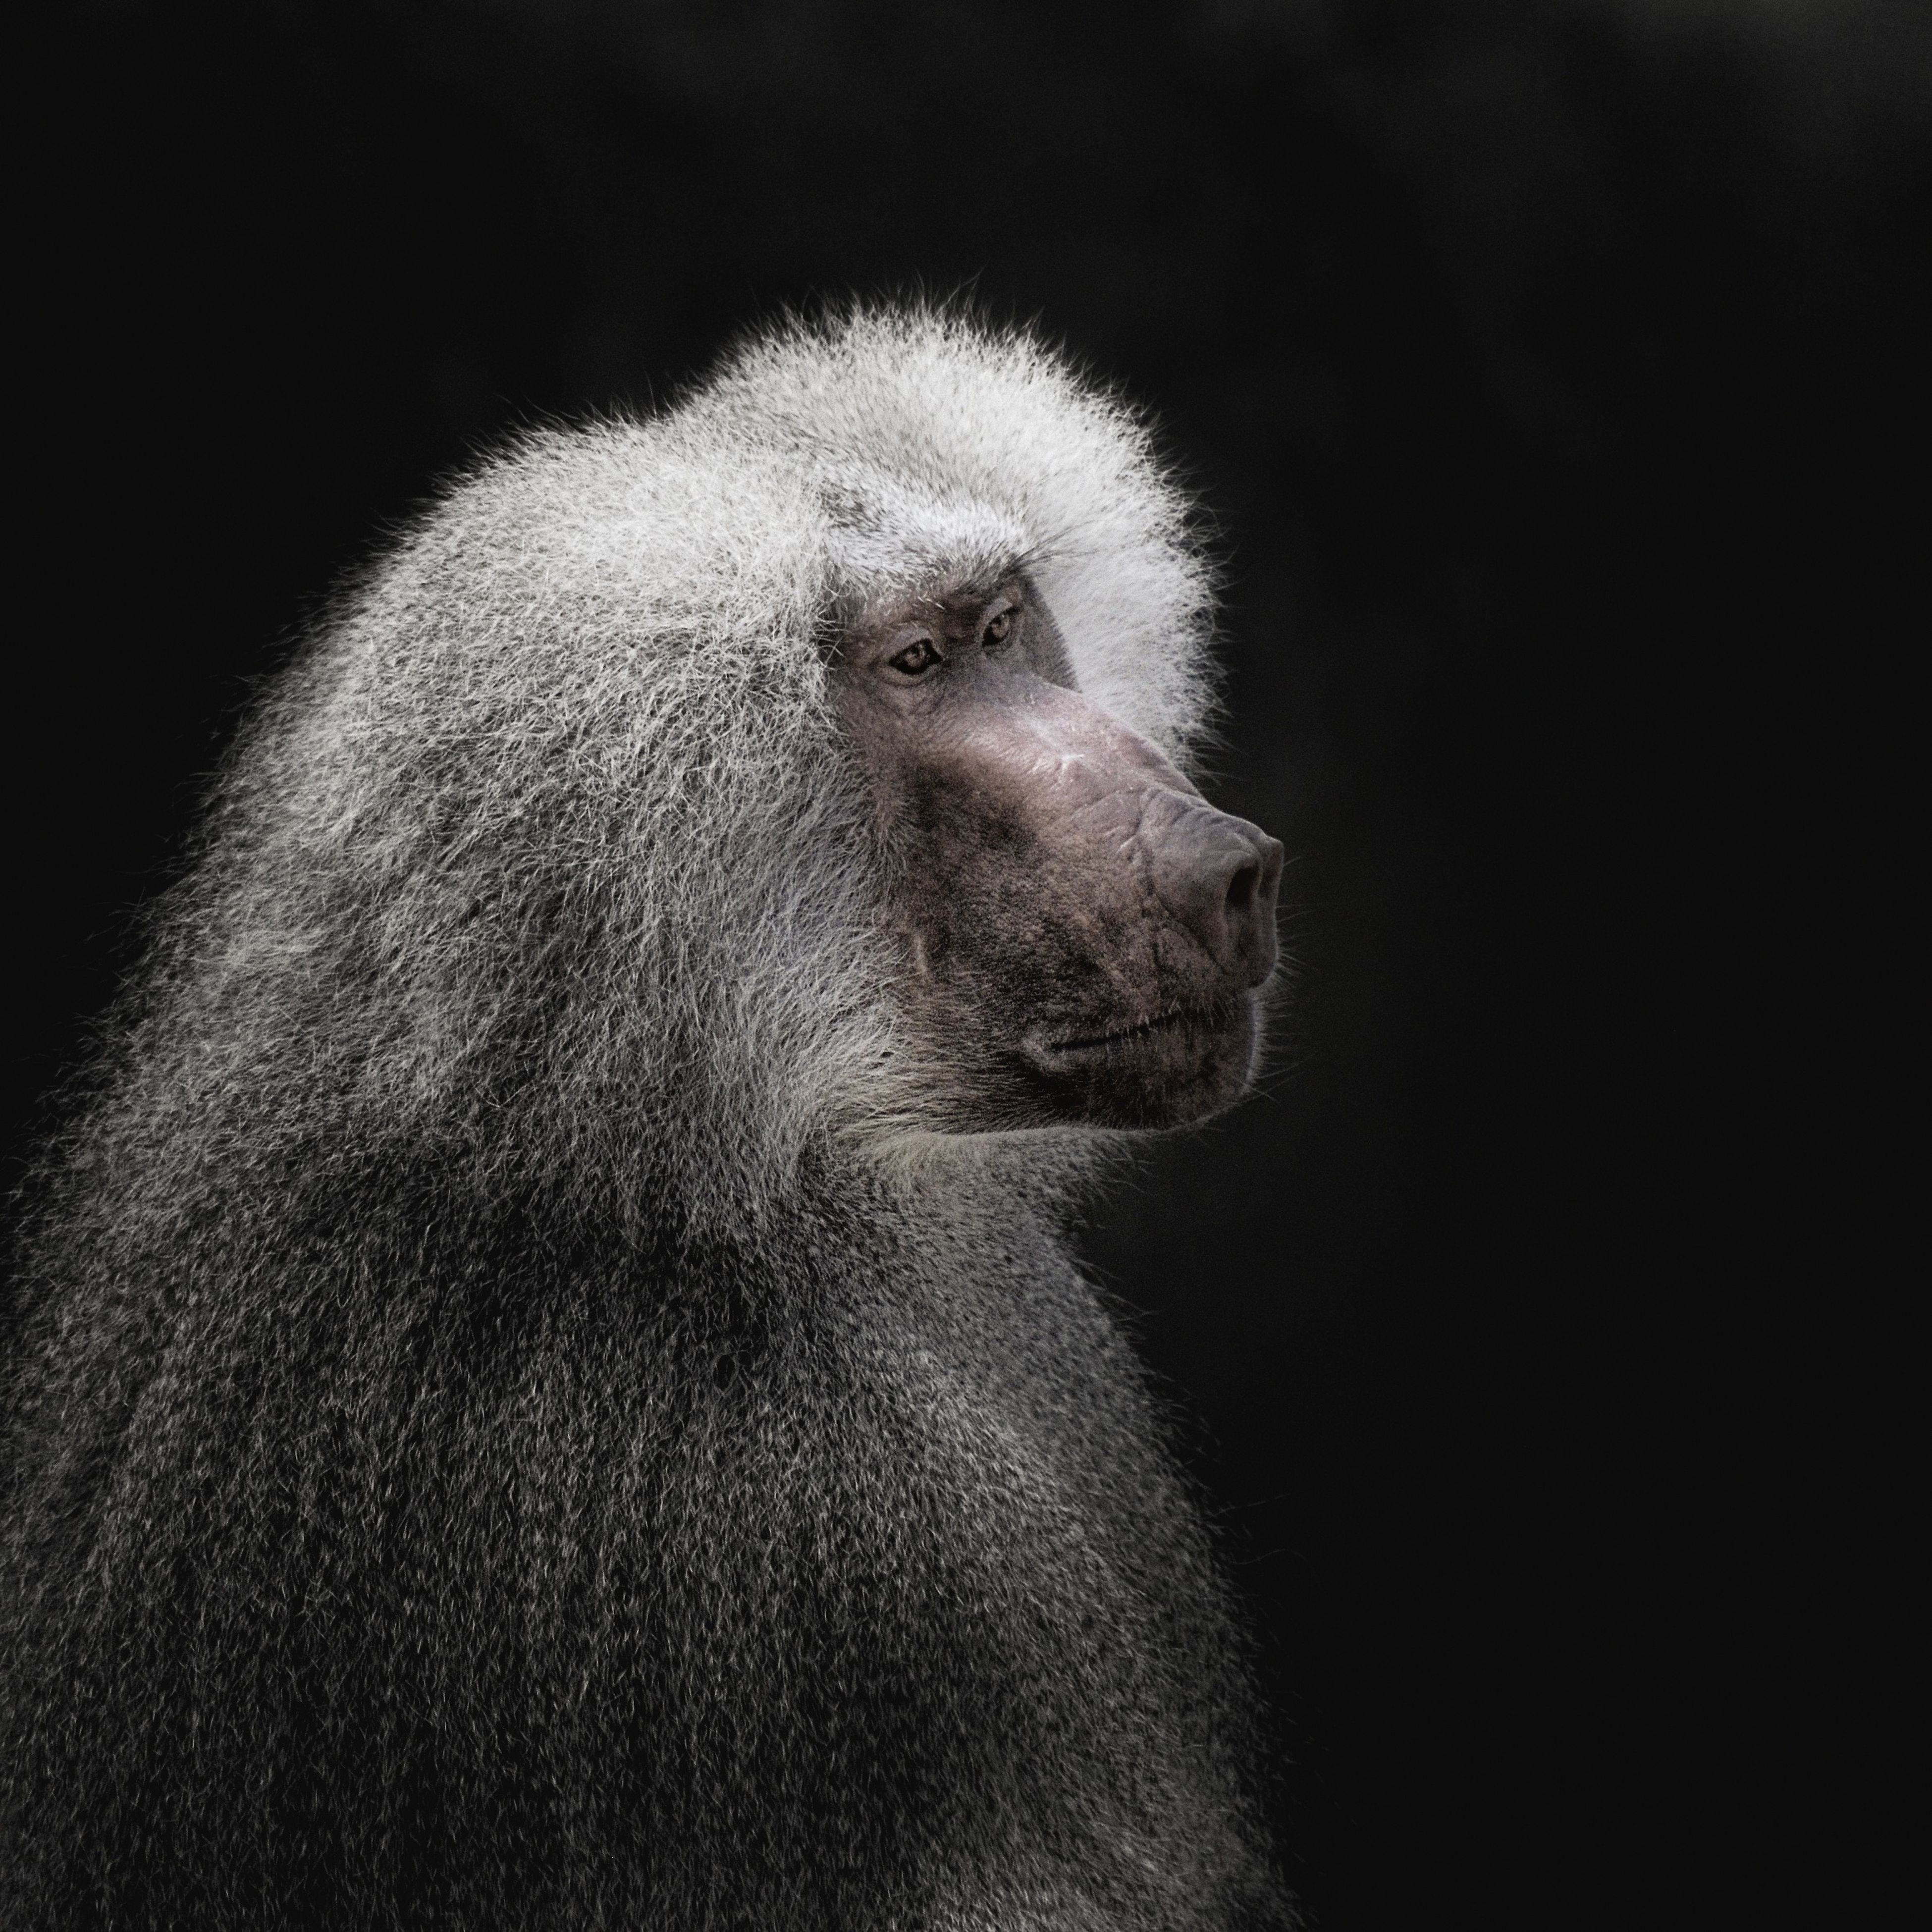 one animal, mammal, monkey, animals in the wild, baboon, animal wildlife, black background, no people, animal themes, nature, outdoors, close-up, day, japanese macaque